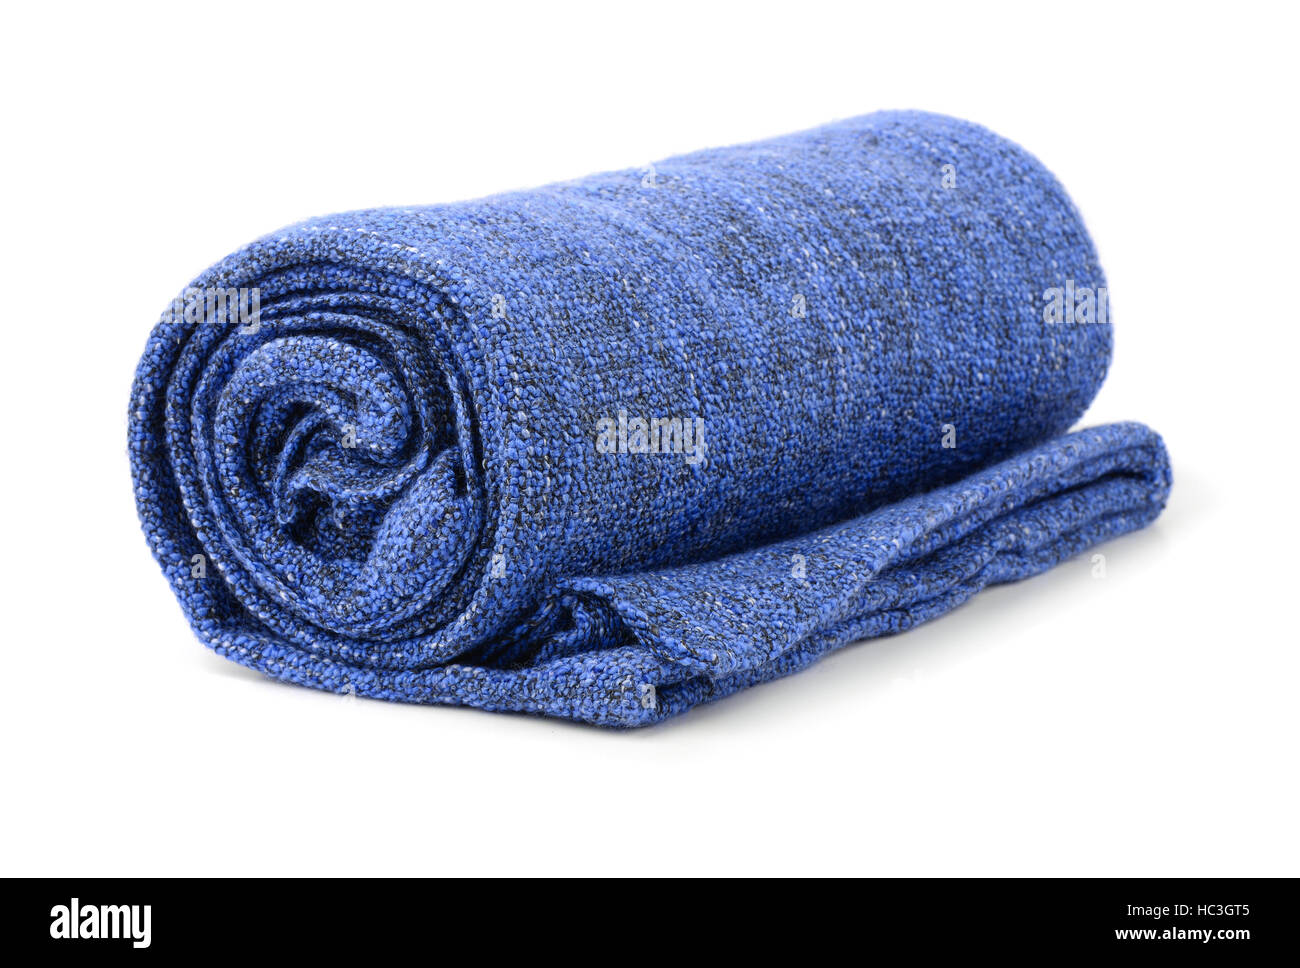 Blue rolled blanket isolated on white - Stock Image